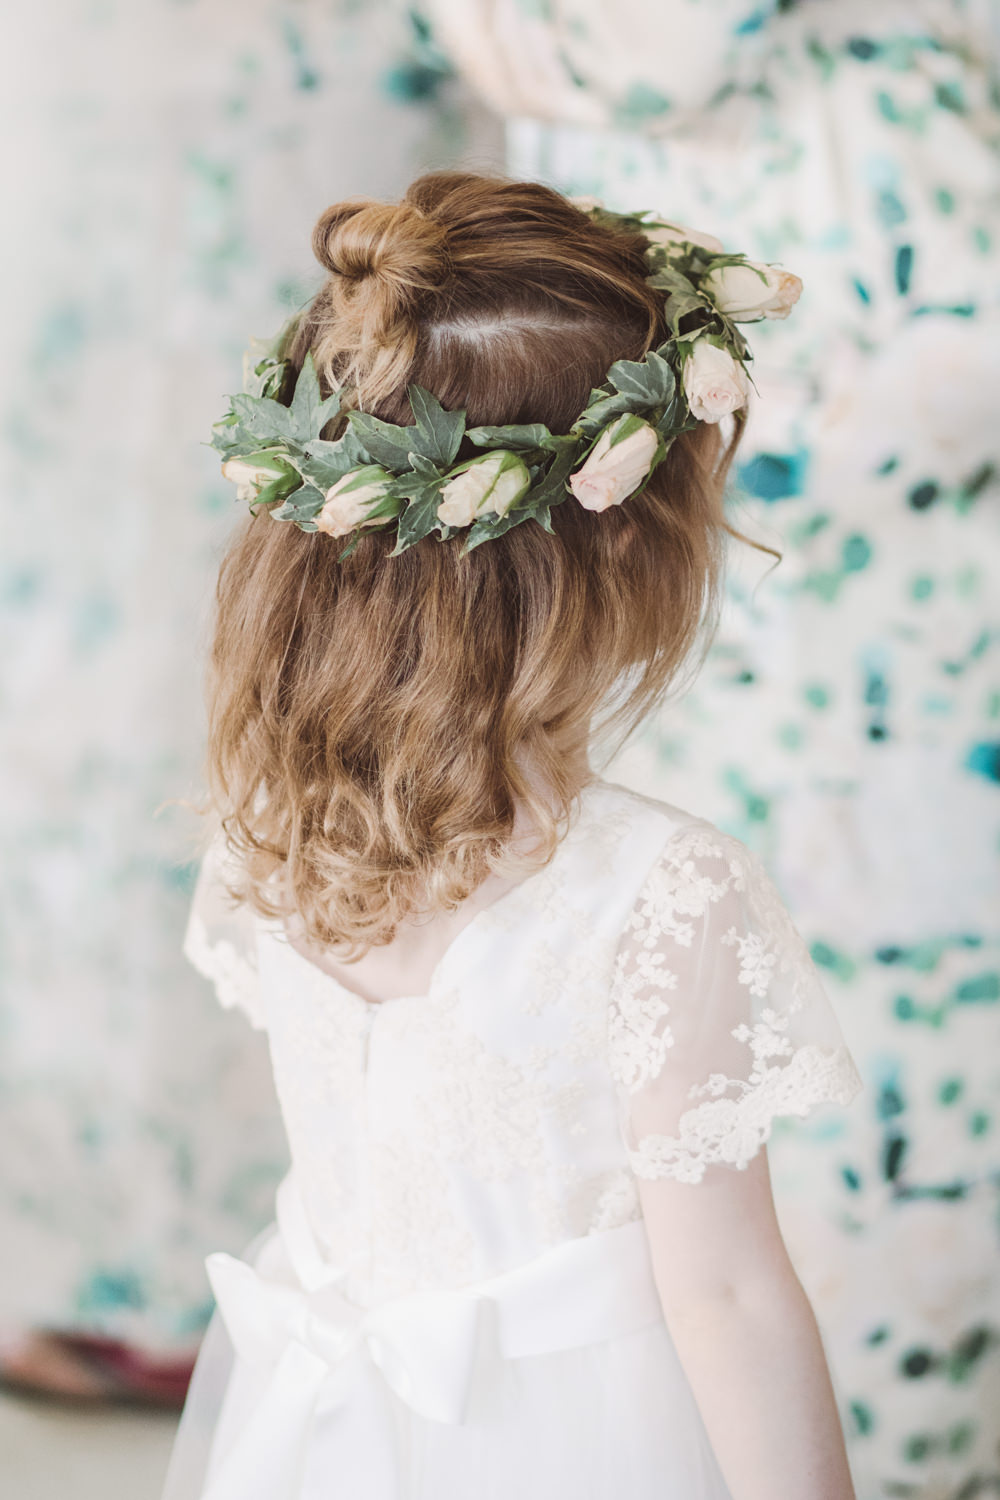 Flower Girl Floral Crown Watercolour Wedding Kerry Ann Duffy Photography